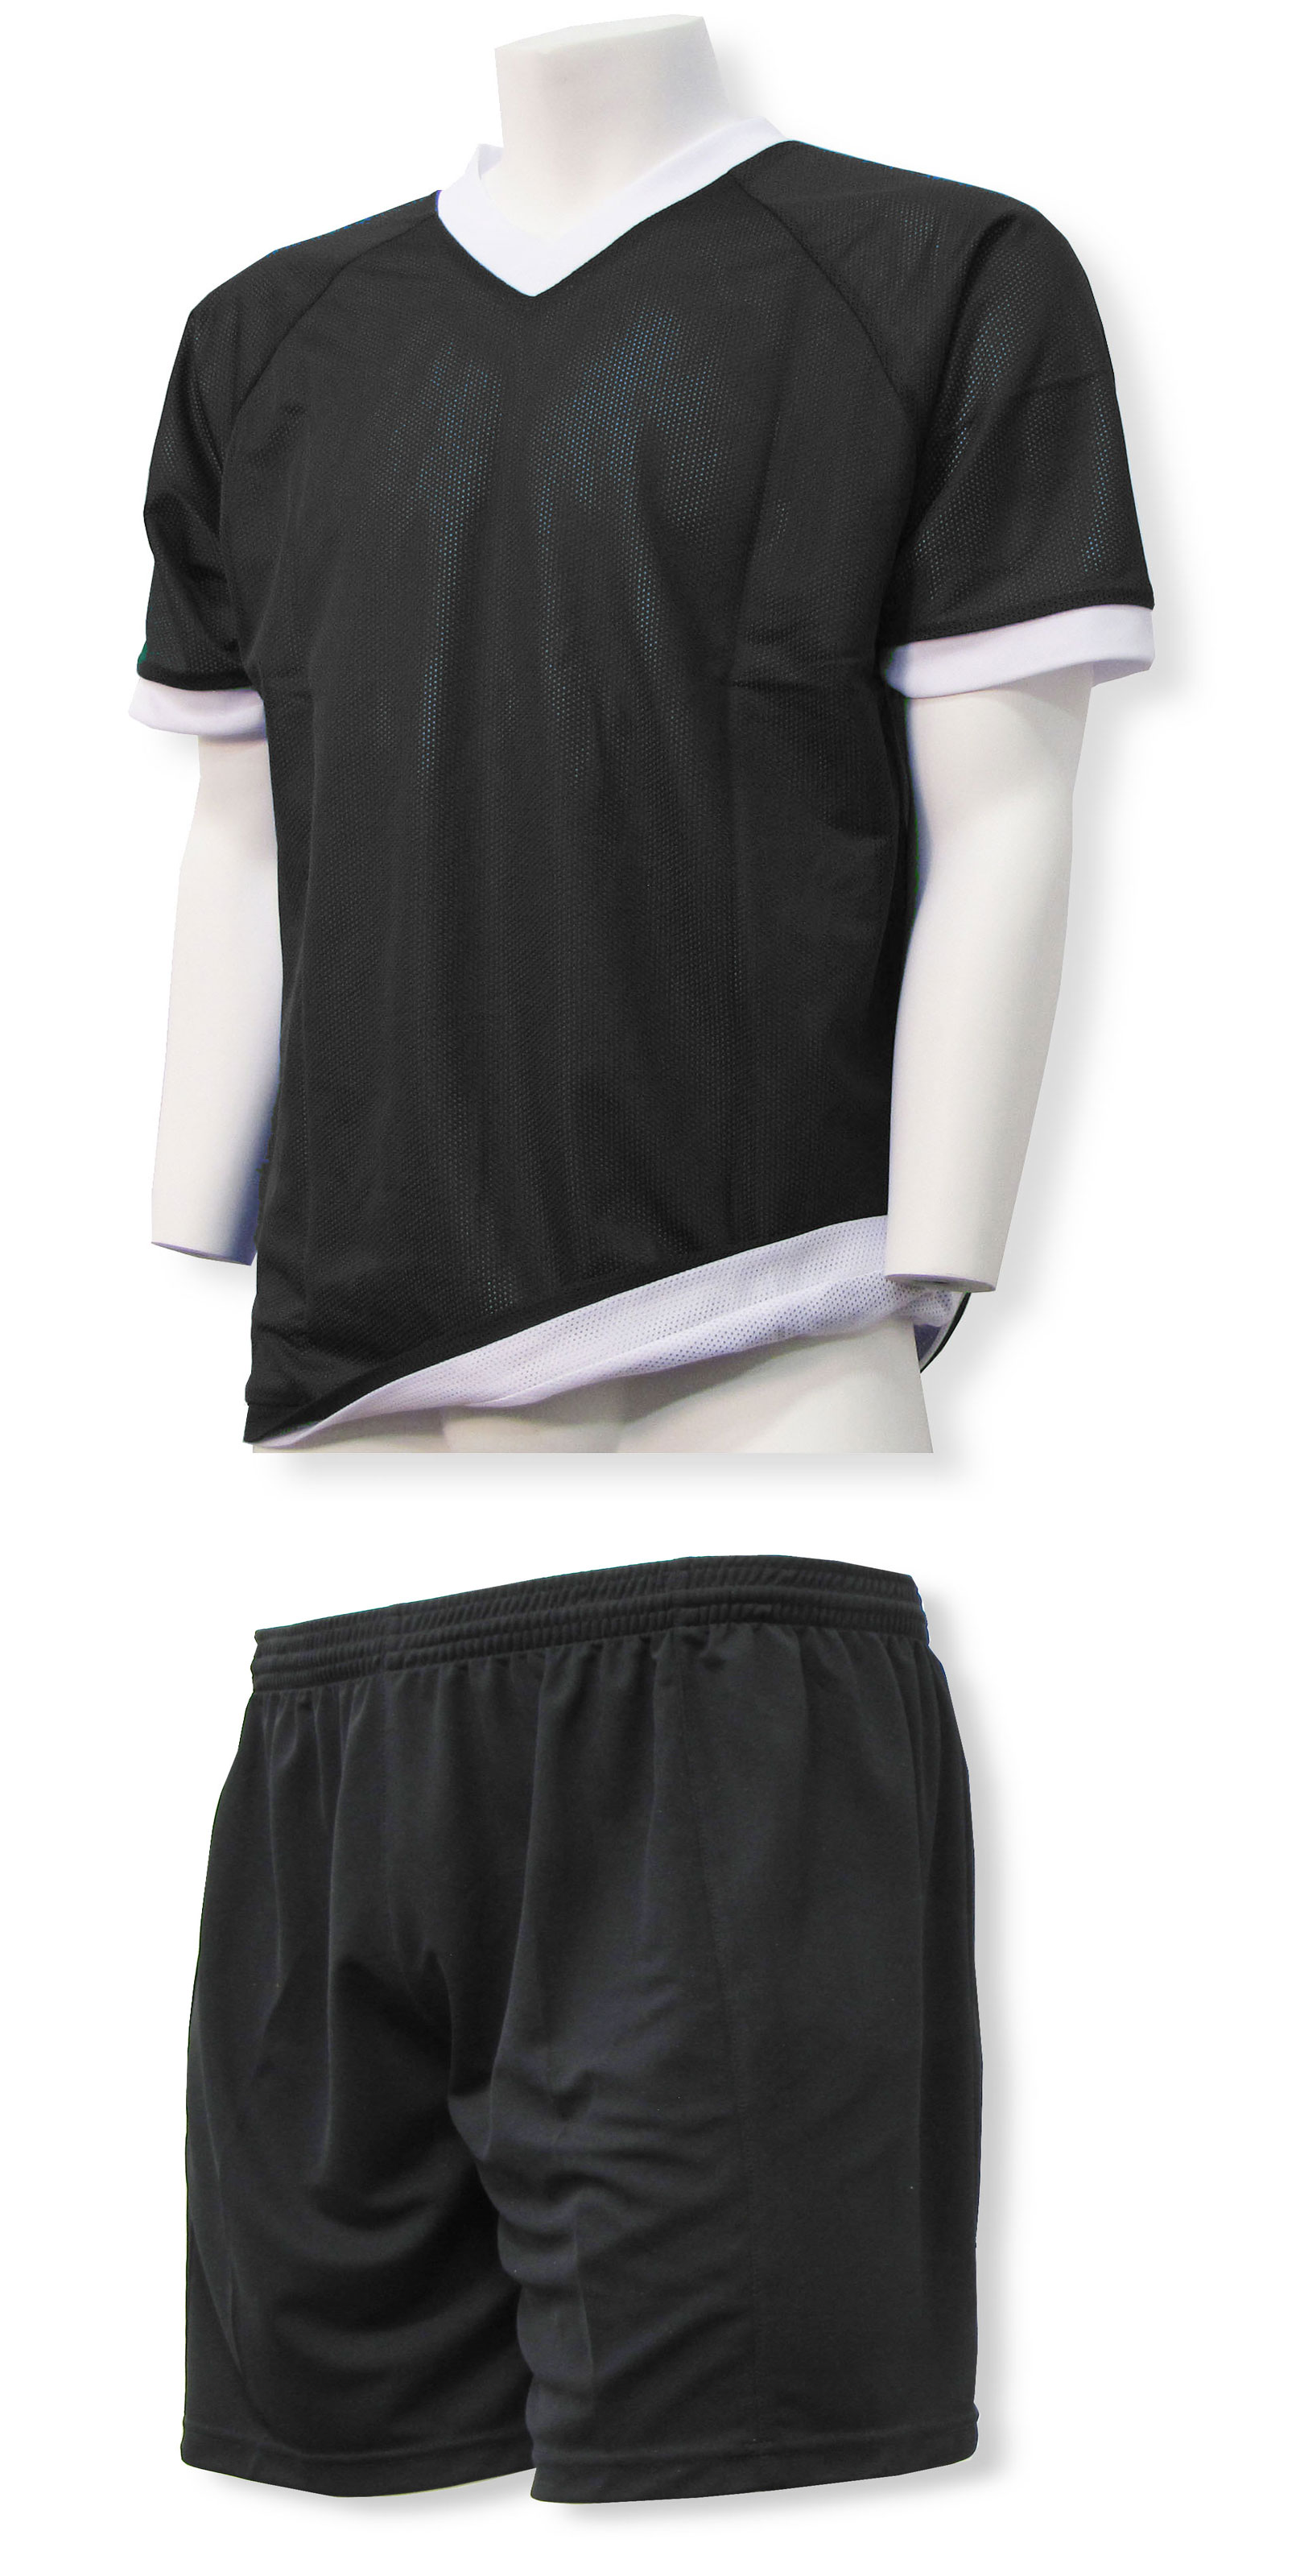 Reversible sports uniform jersey with black shorts by Code Four Athletics